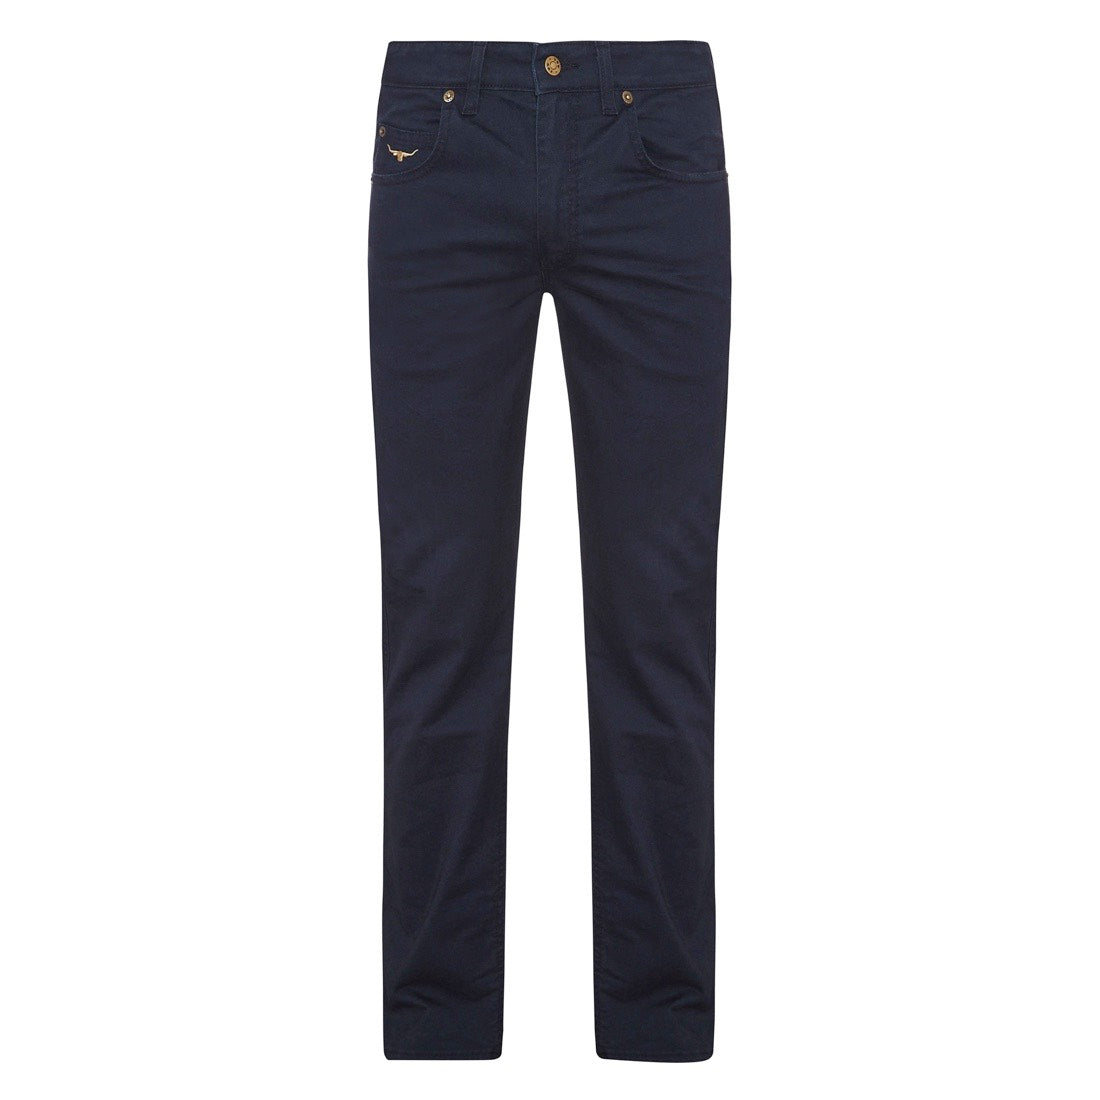 R.M.Williams Linesman 10oz Stretch Drill Jeans Slim Fit Navy